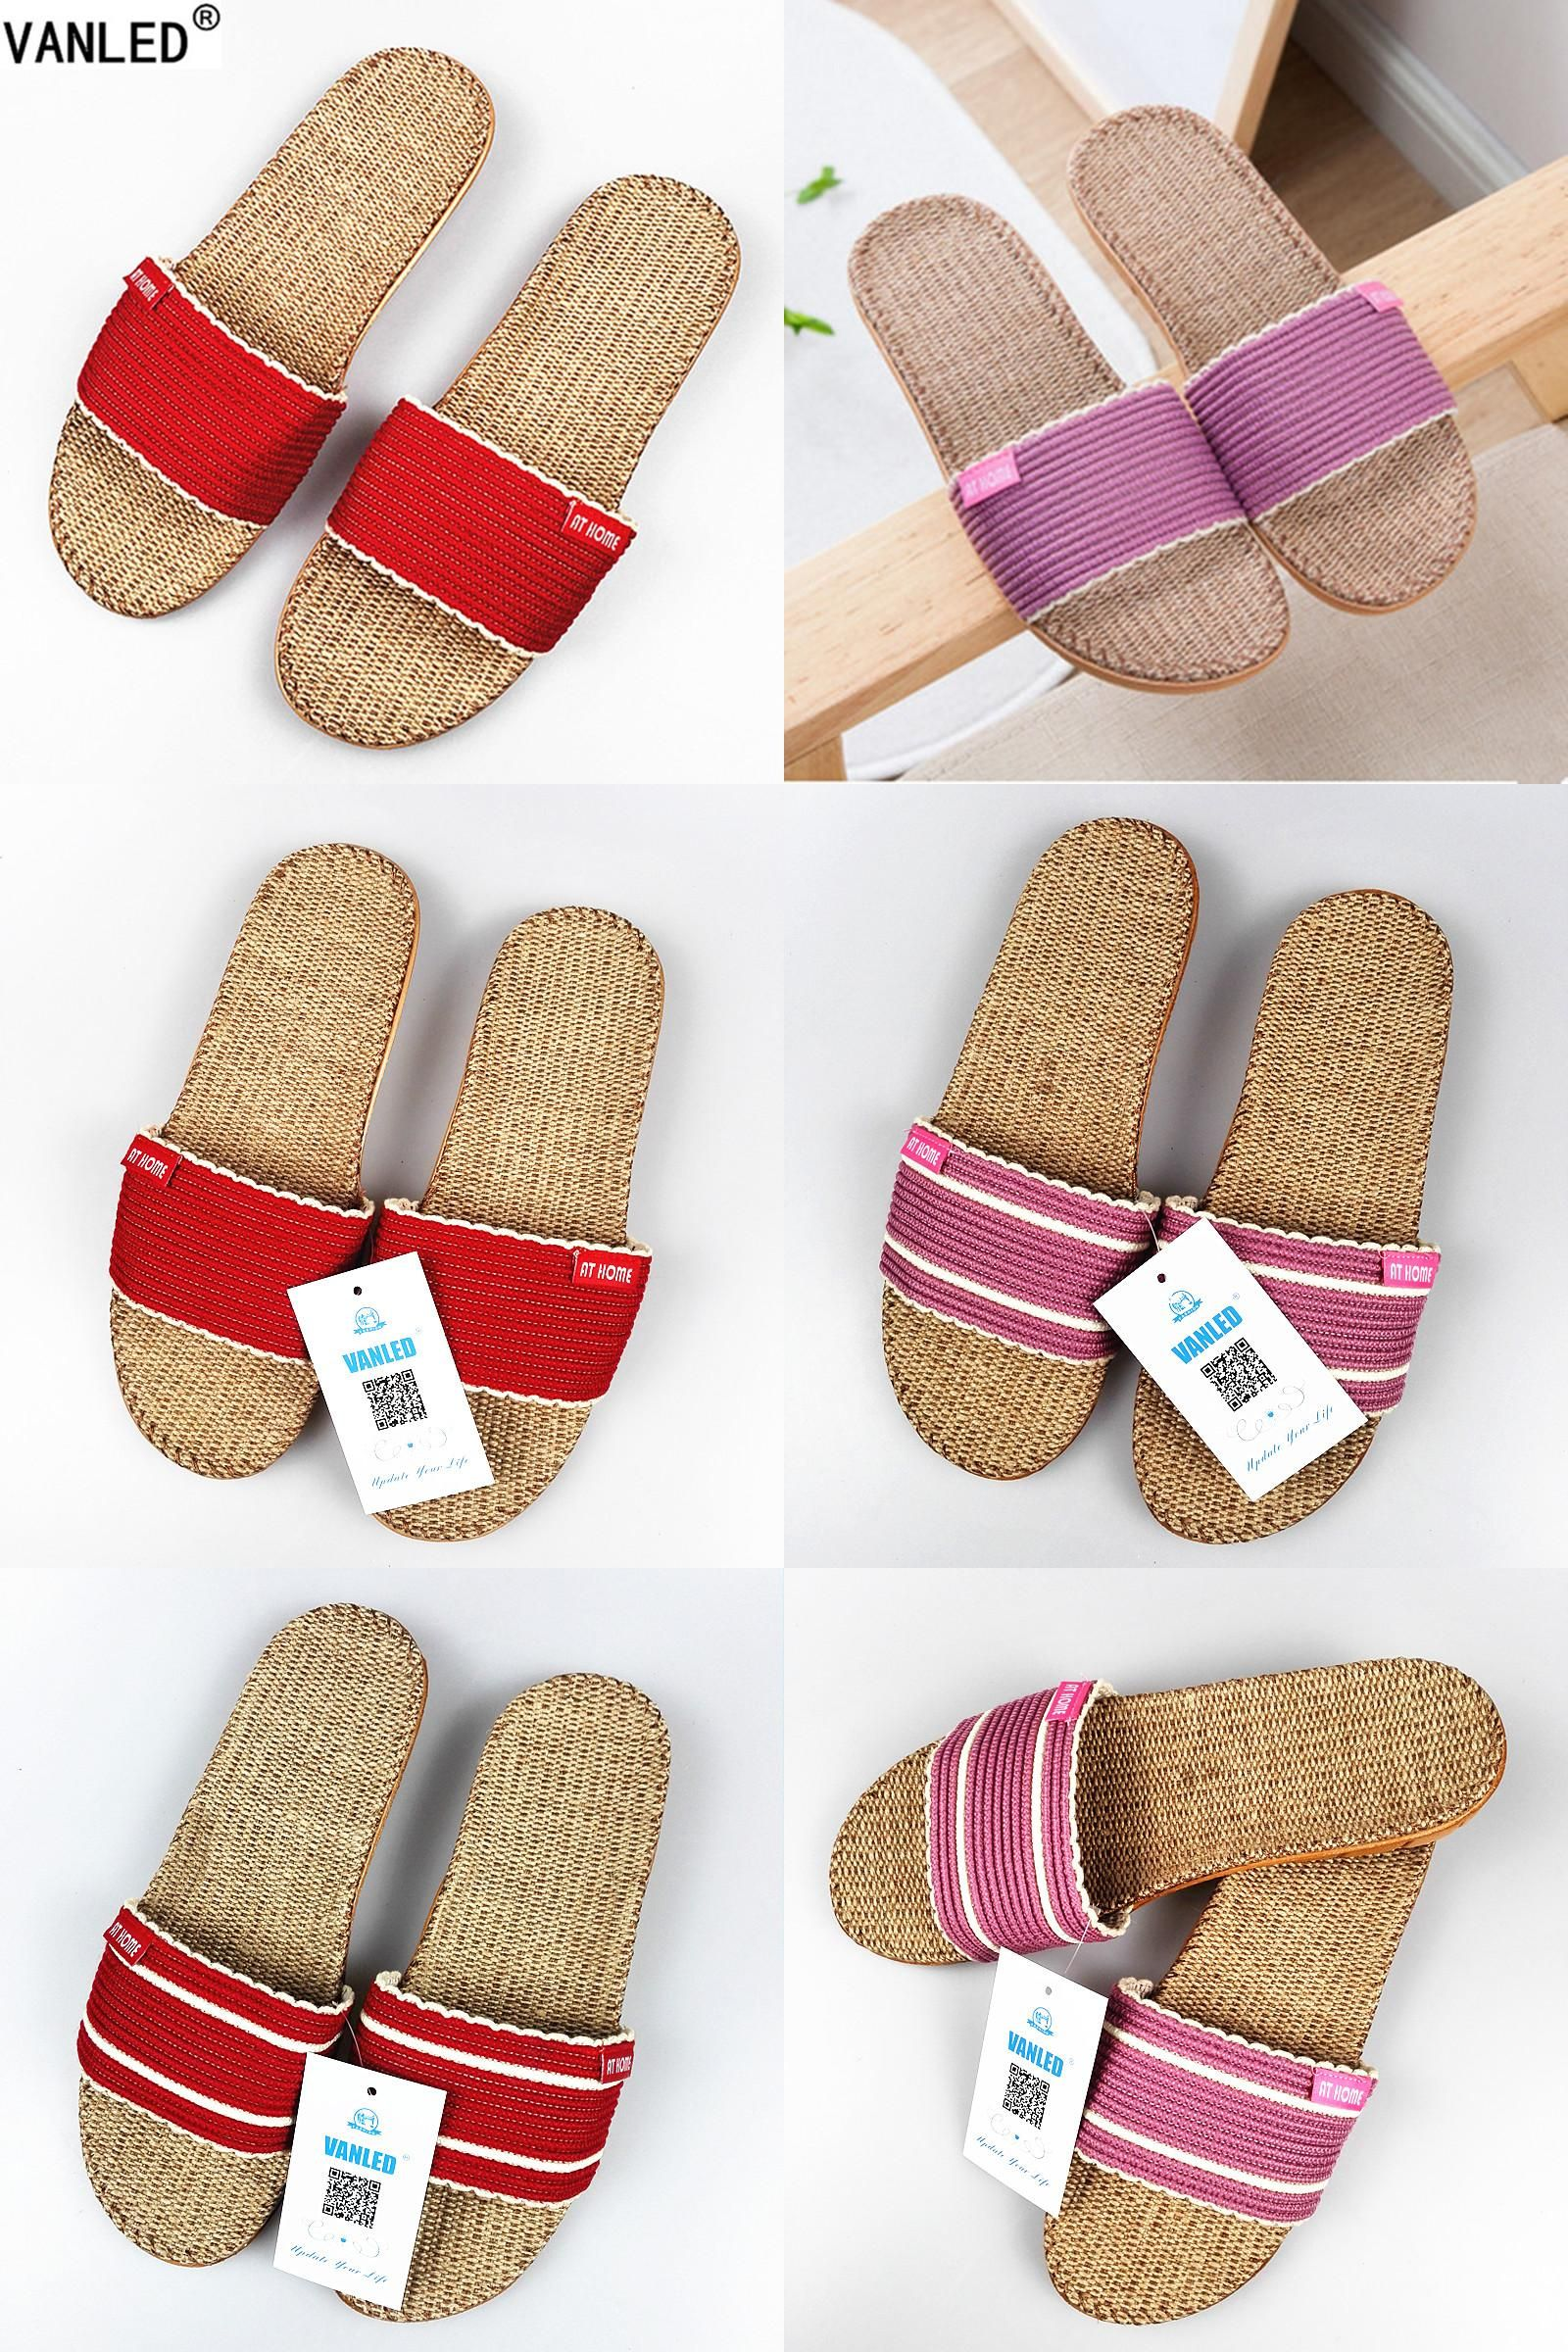 bd41692a5c17  Visit to Buy  VANLED 2017 New Fashion Summer Autumn Home Linen Slippers  Women Indoor  Floor Breathable Beach Slides Flat Shoes Girls Gift   Advertisement